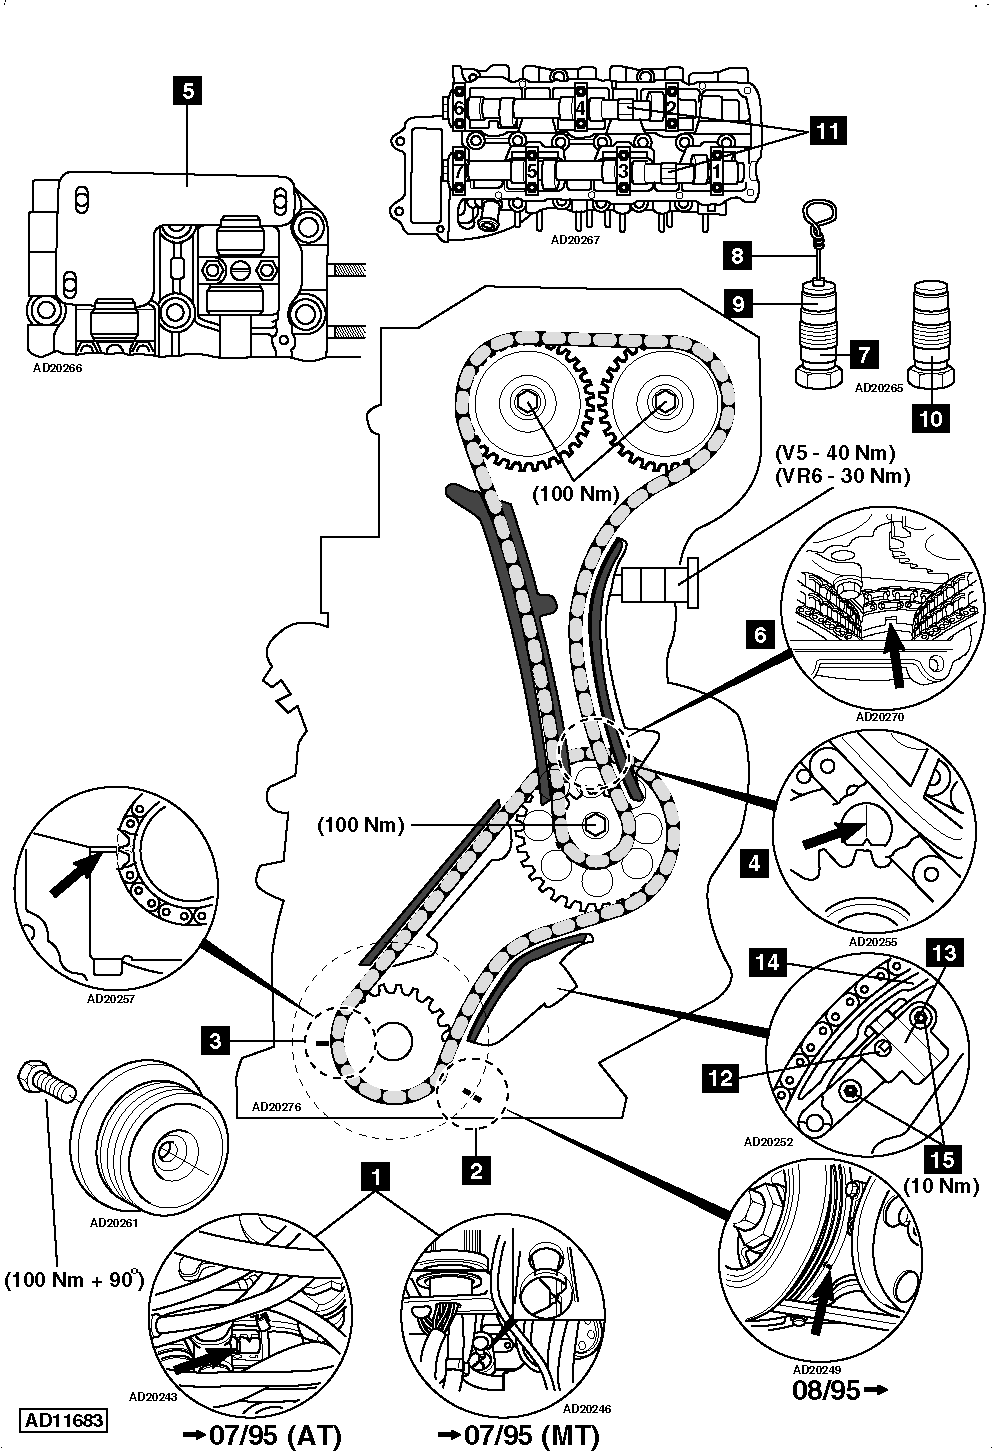 hight resolution of vr6 engine timing diagram wiring diagram pmz vr6 cam timing marks vr6 engine timing diagram